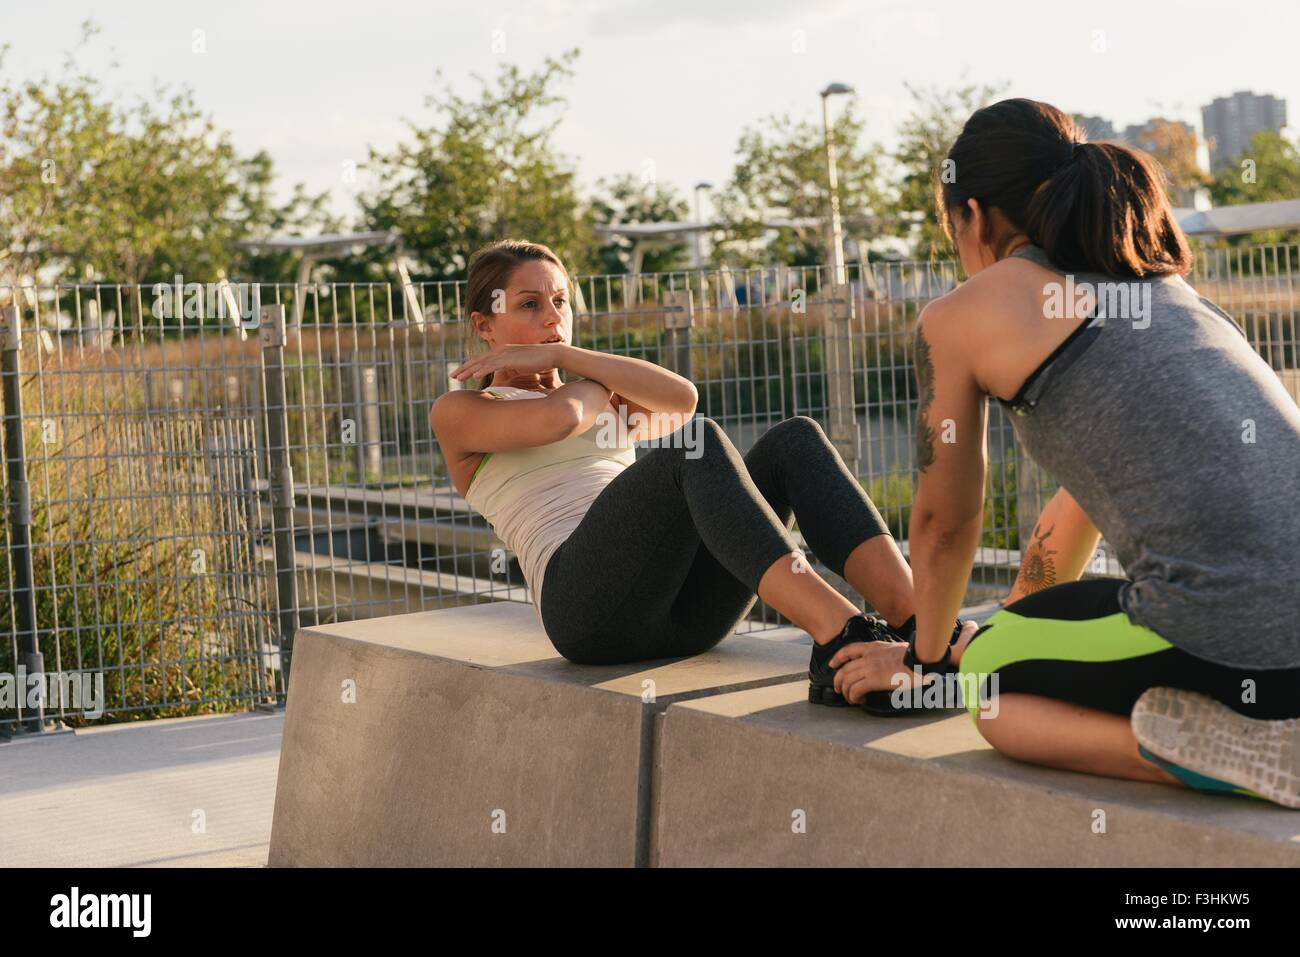 Two friends exercising together and helping to do sit ups - Stock Image